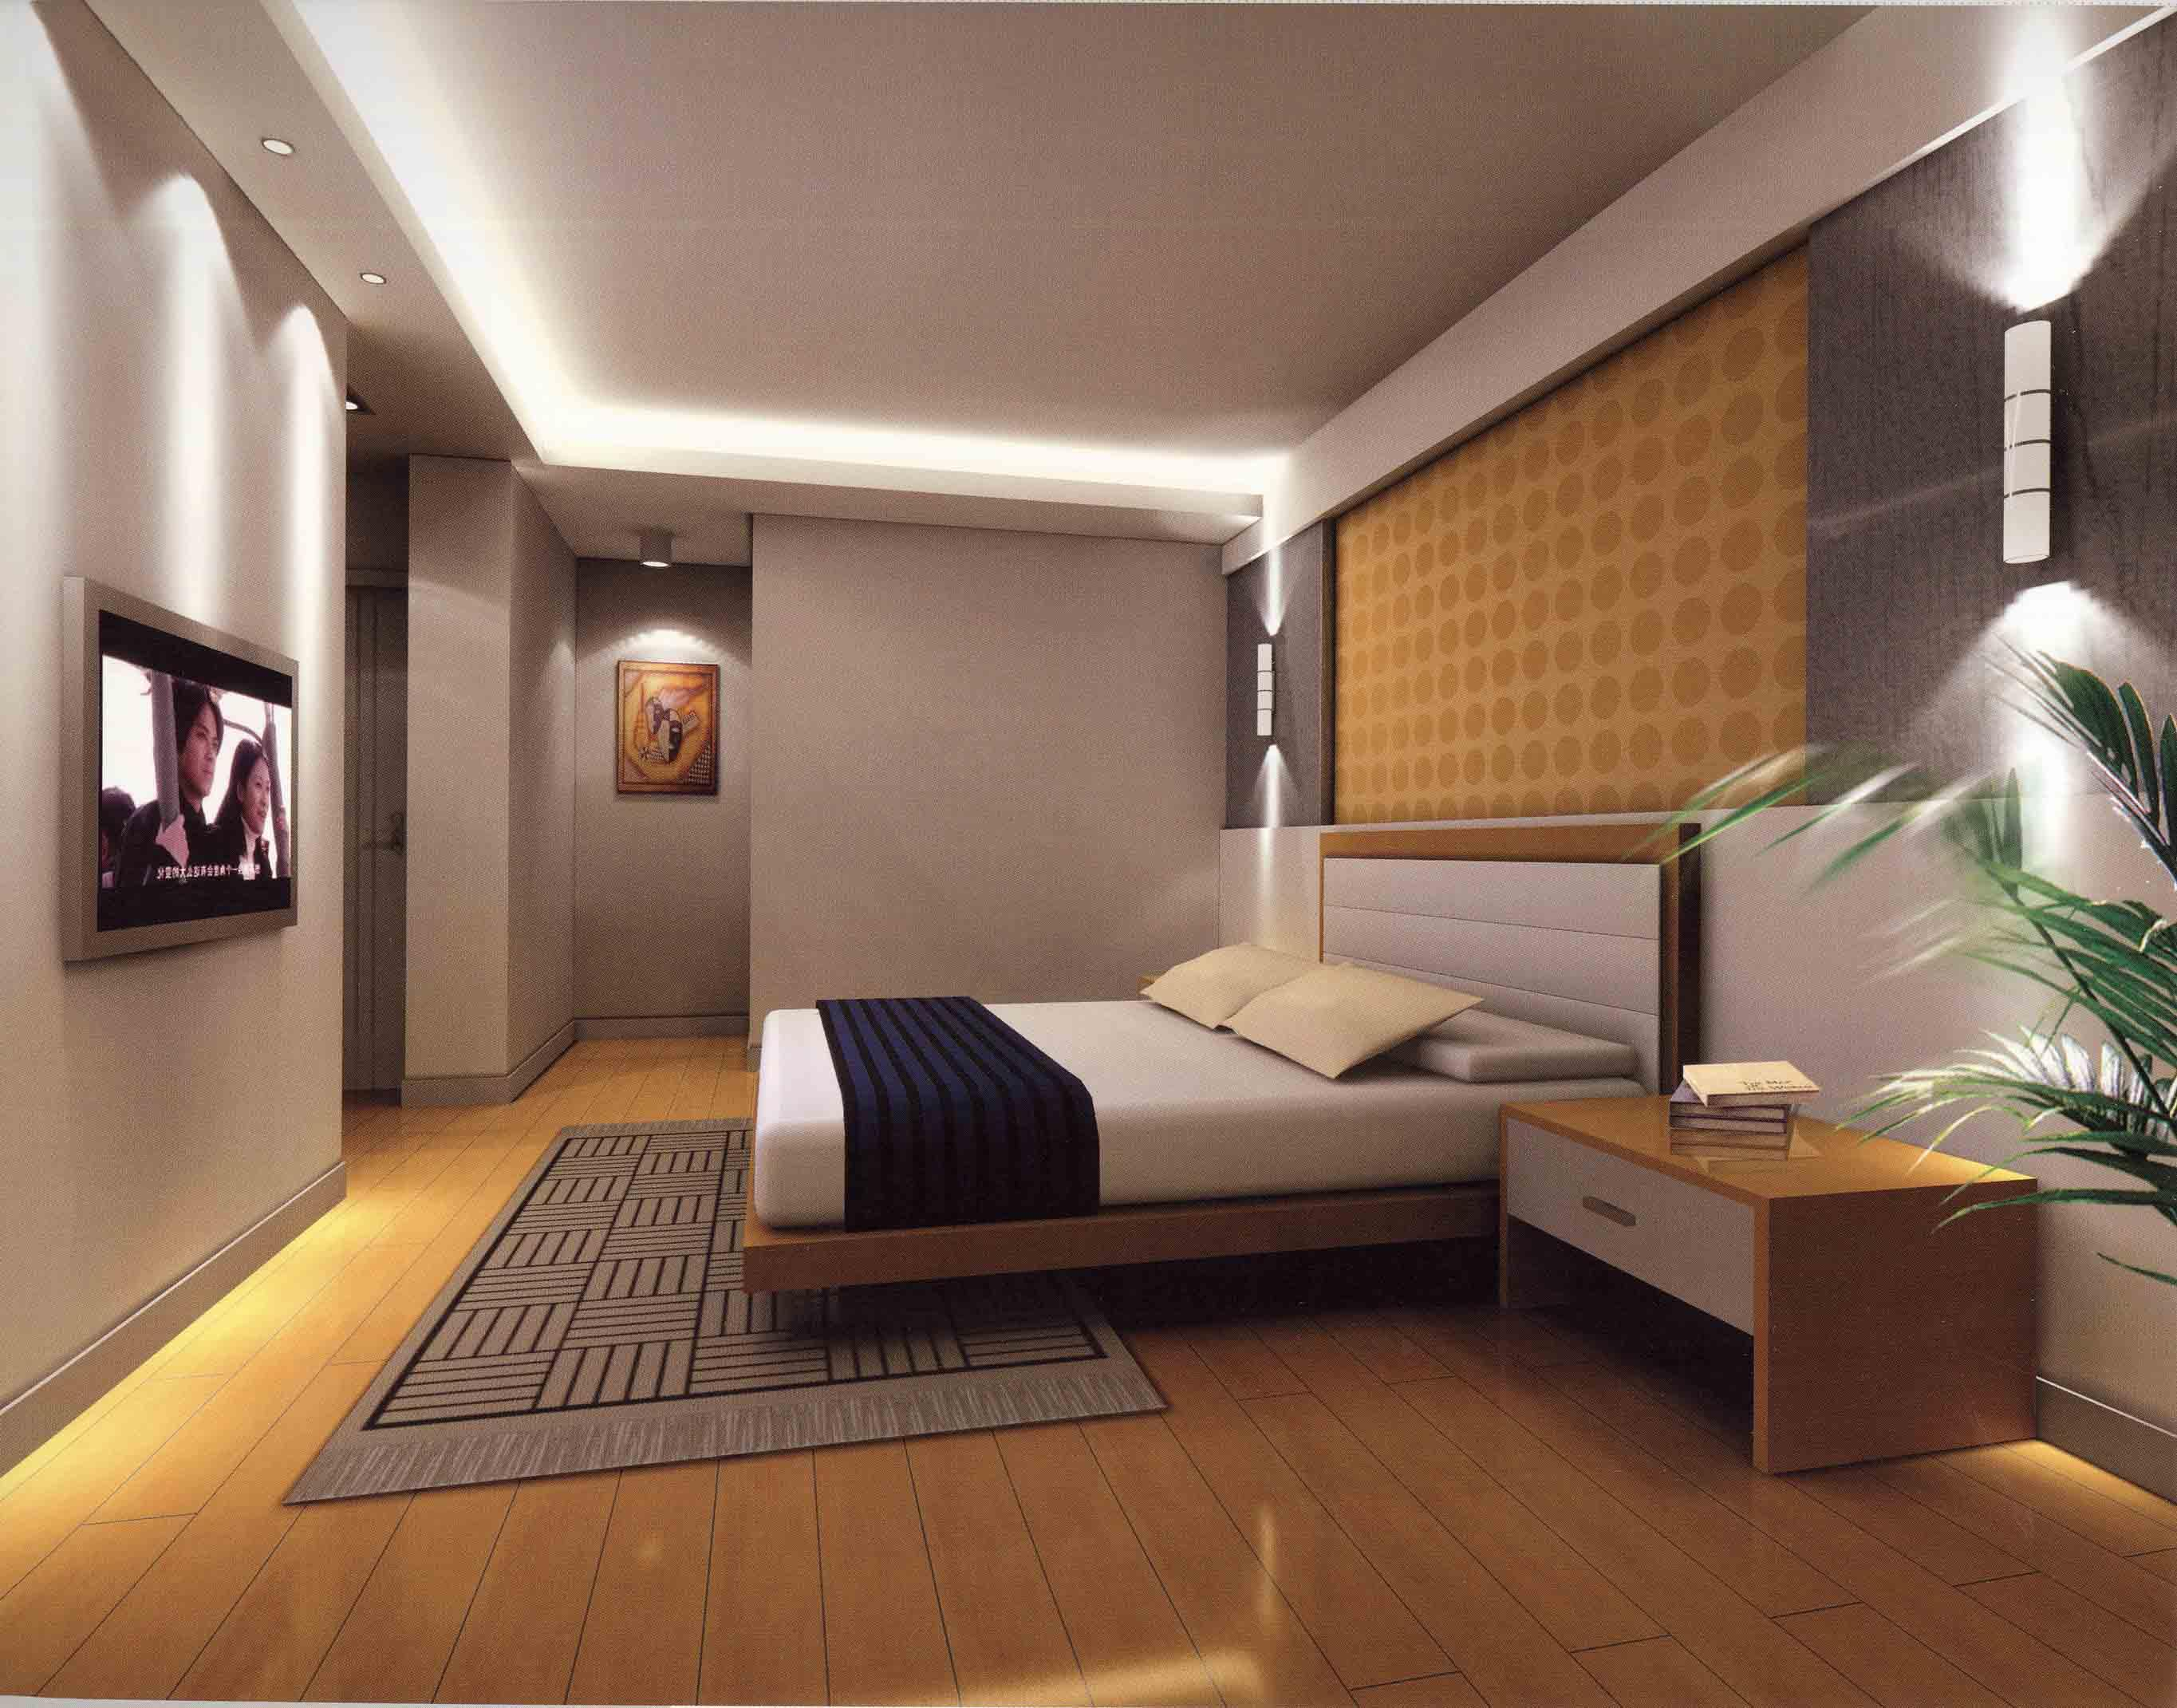 25 cool bedroom designs collection for Bedroom decor pictures